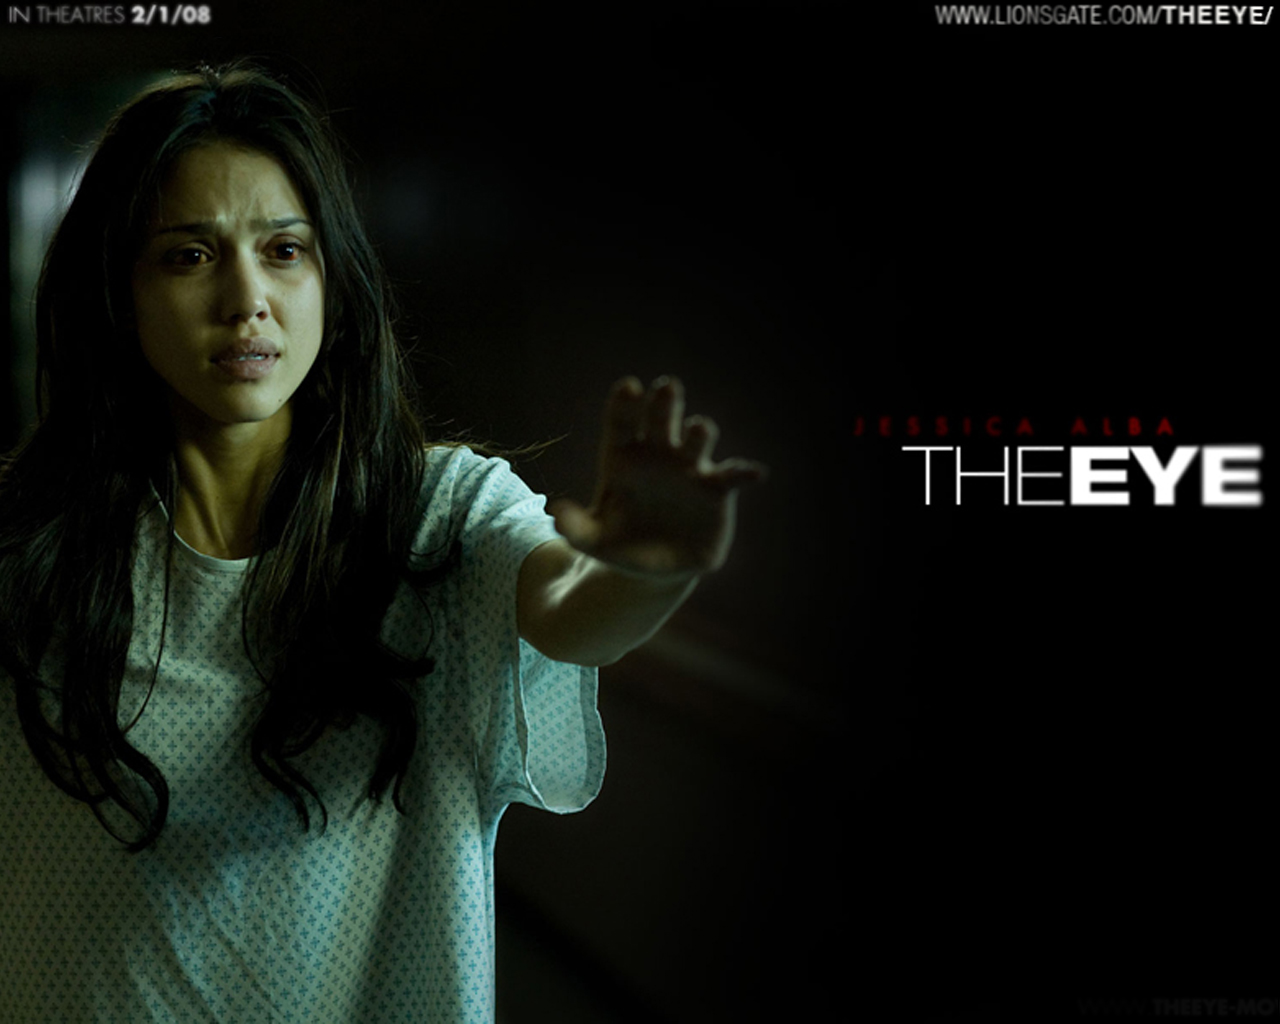 a million of wallpaperscom the eye movie wallpapers